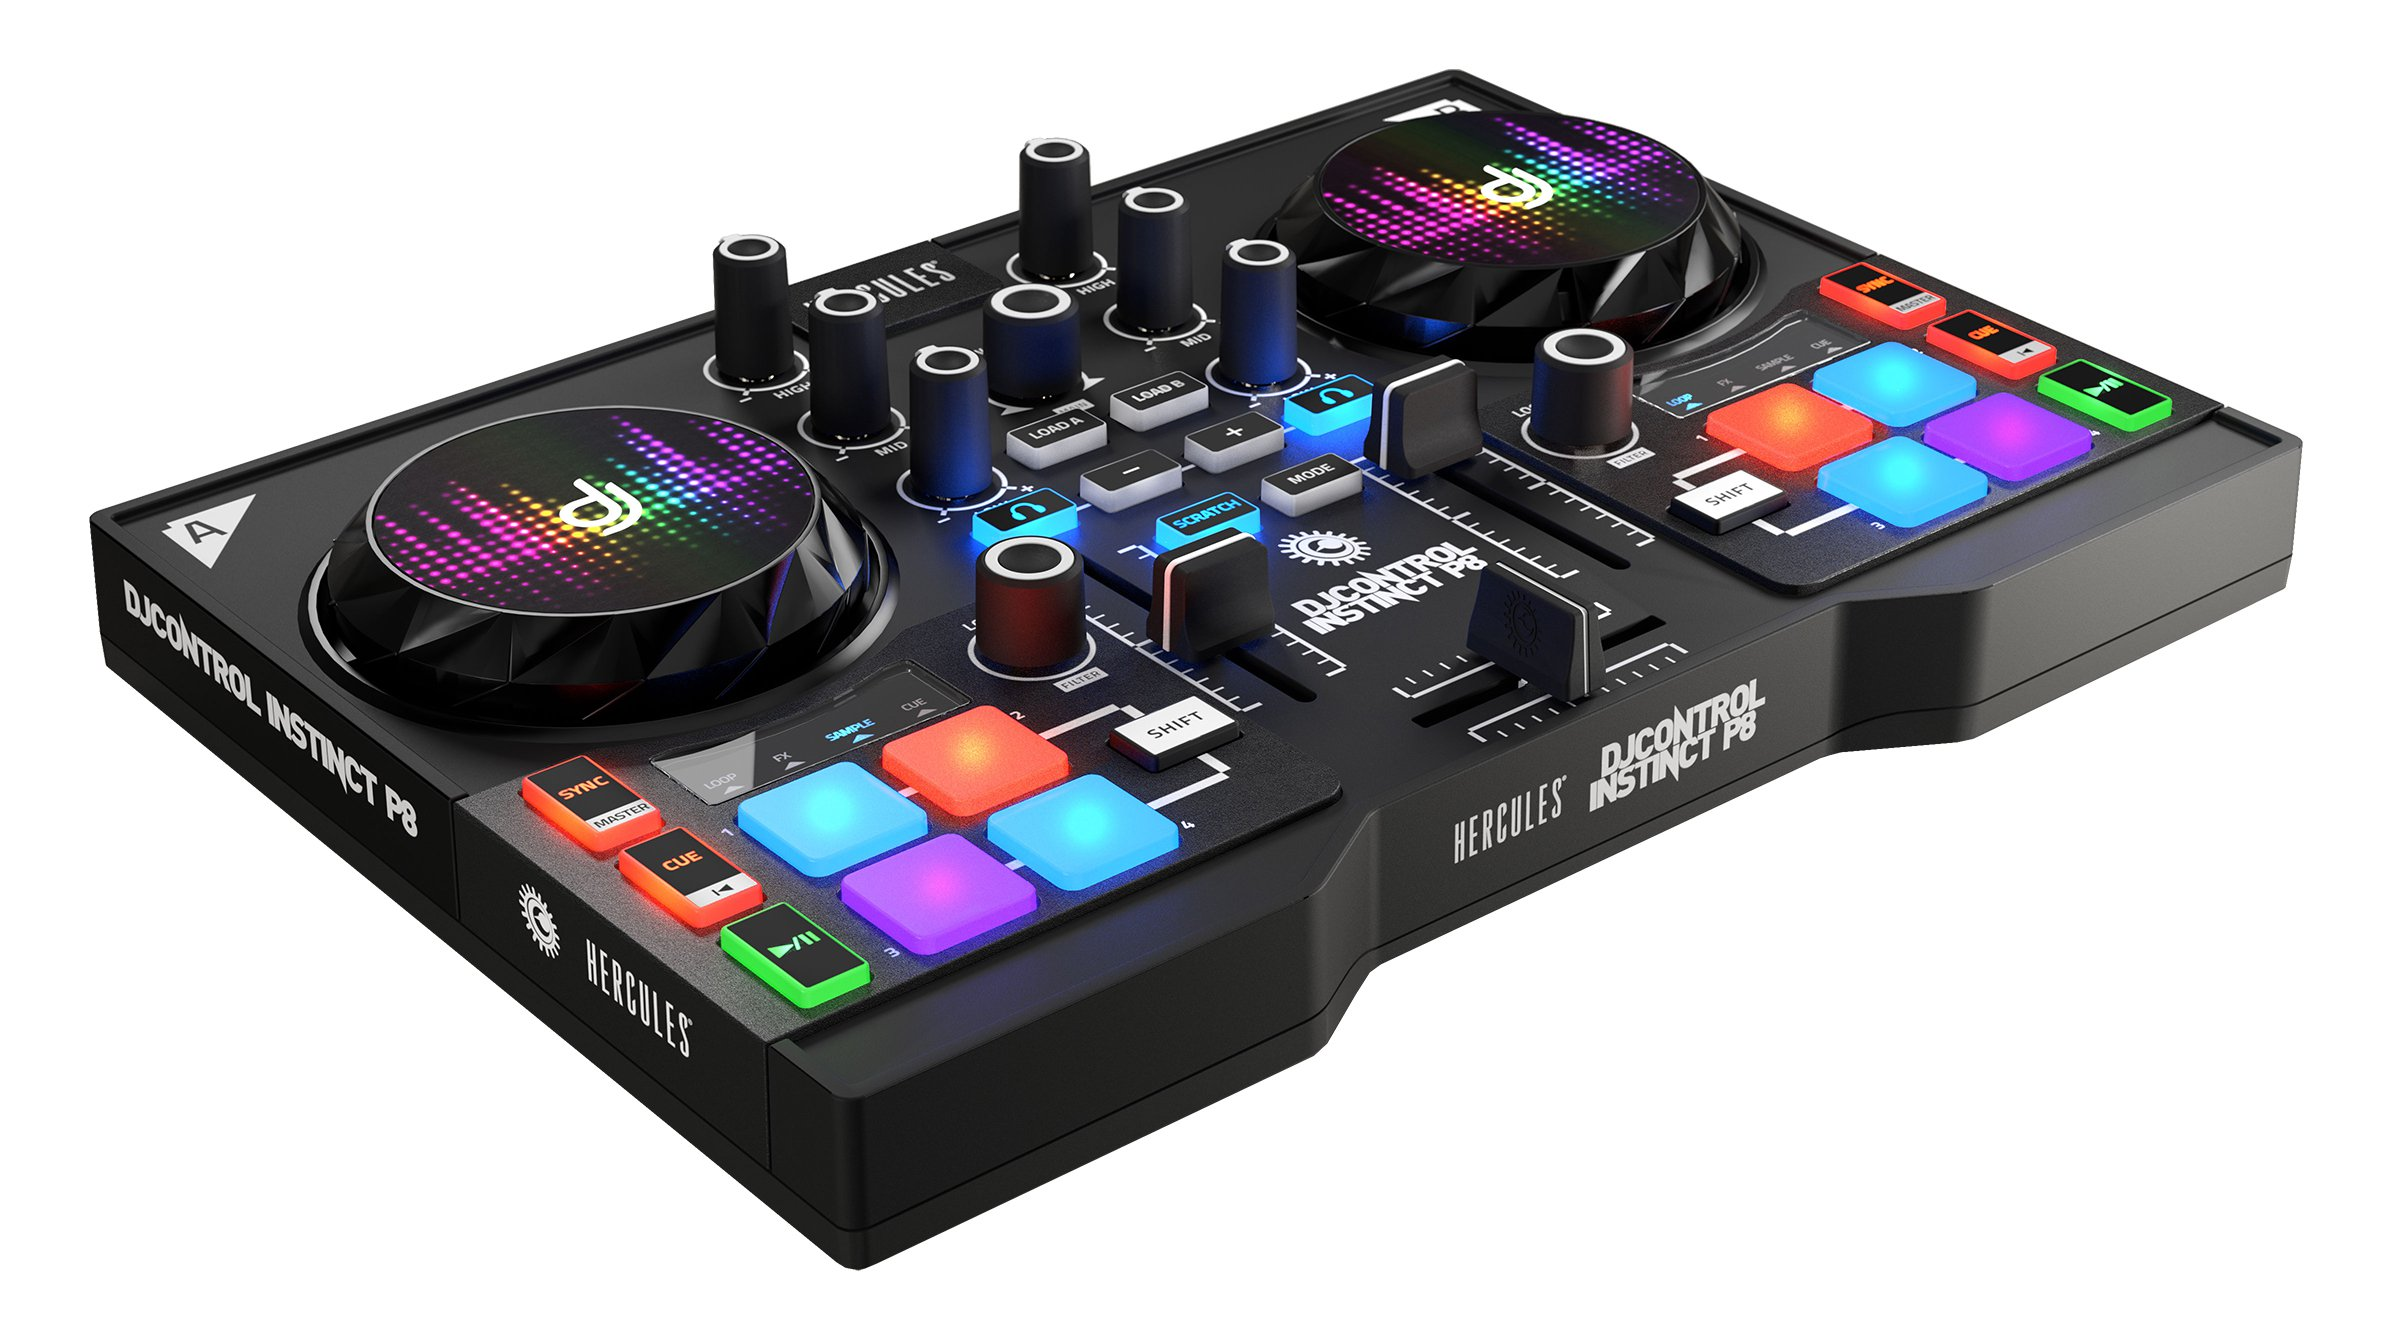 Mesa De Mezclas Dj Para Pc Review Hercules Djcontrol Instinct P8 Party Pack